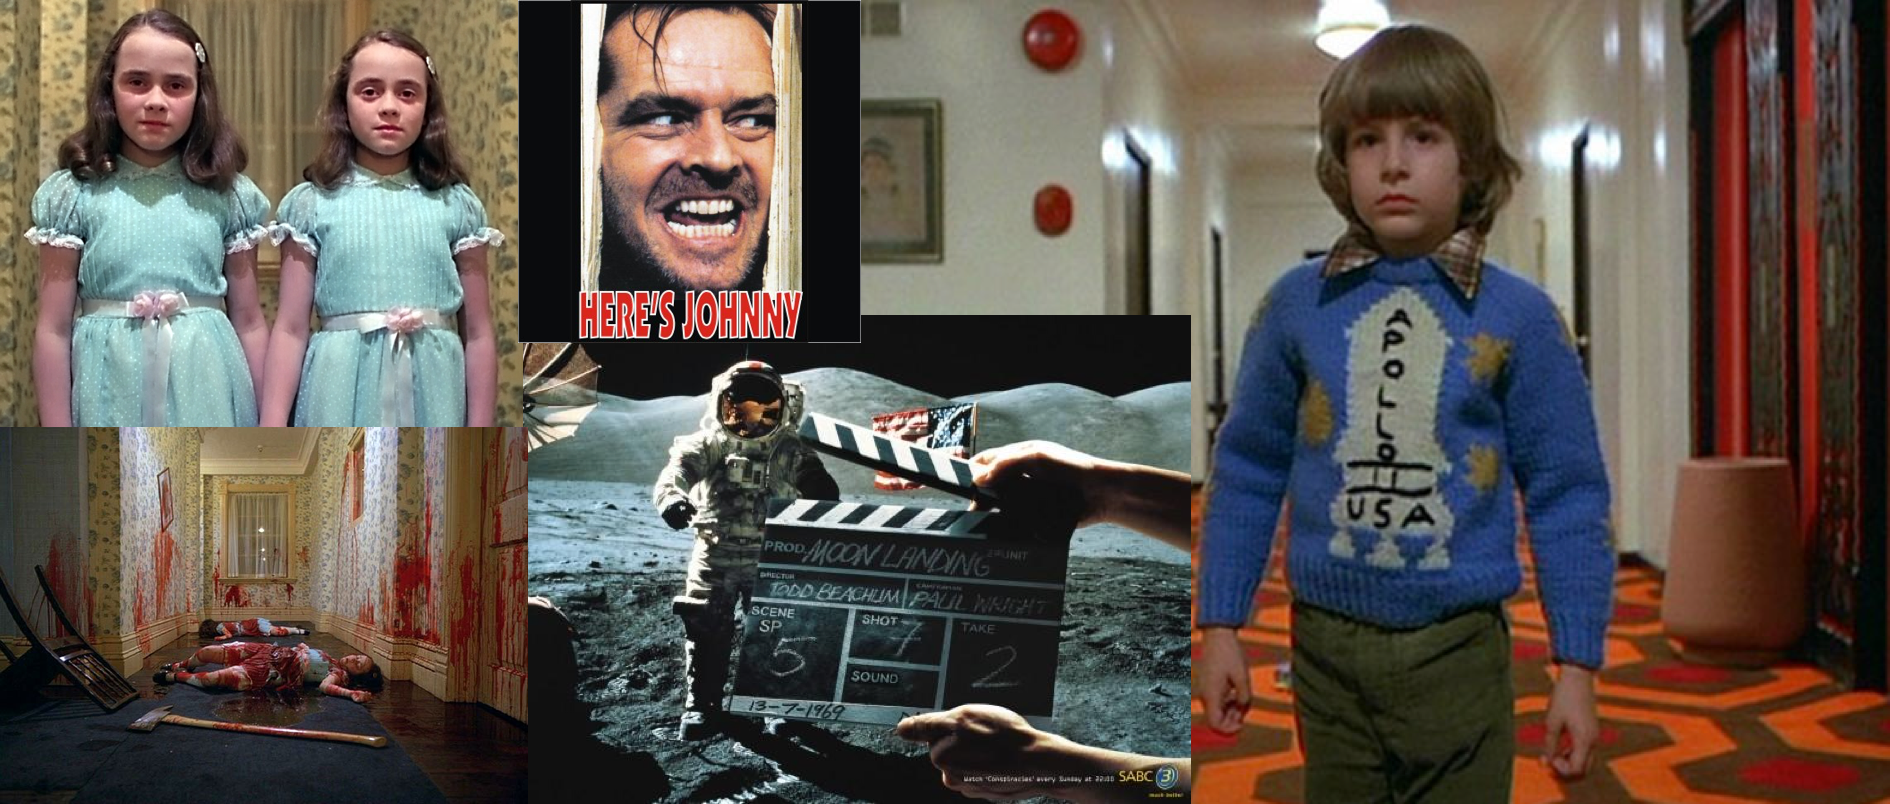 THE SHINING: A KUBRICK CONFESSION OF THE FAKING OF APOLLO 11?